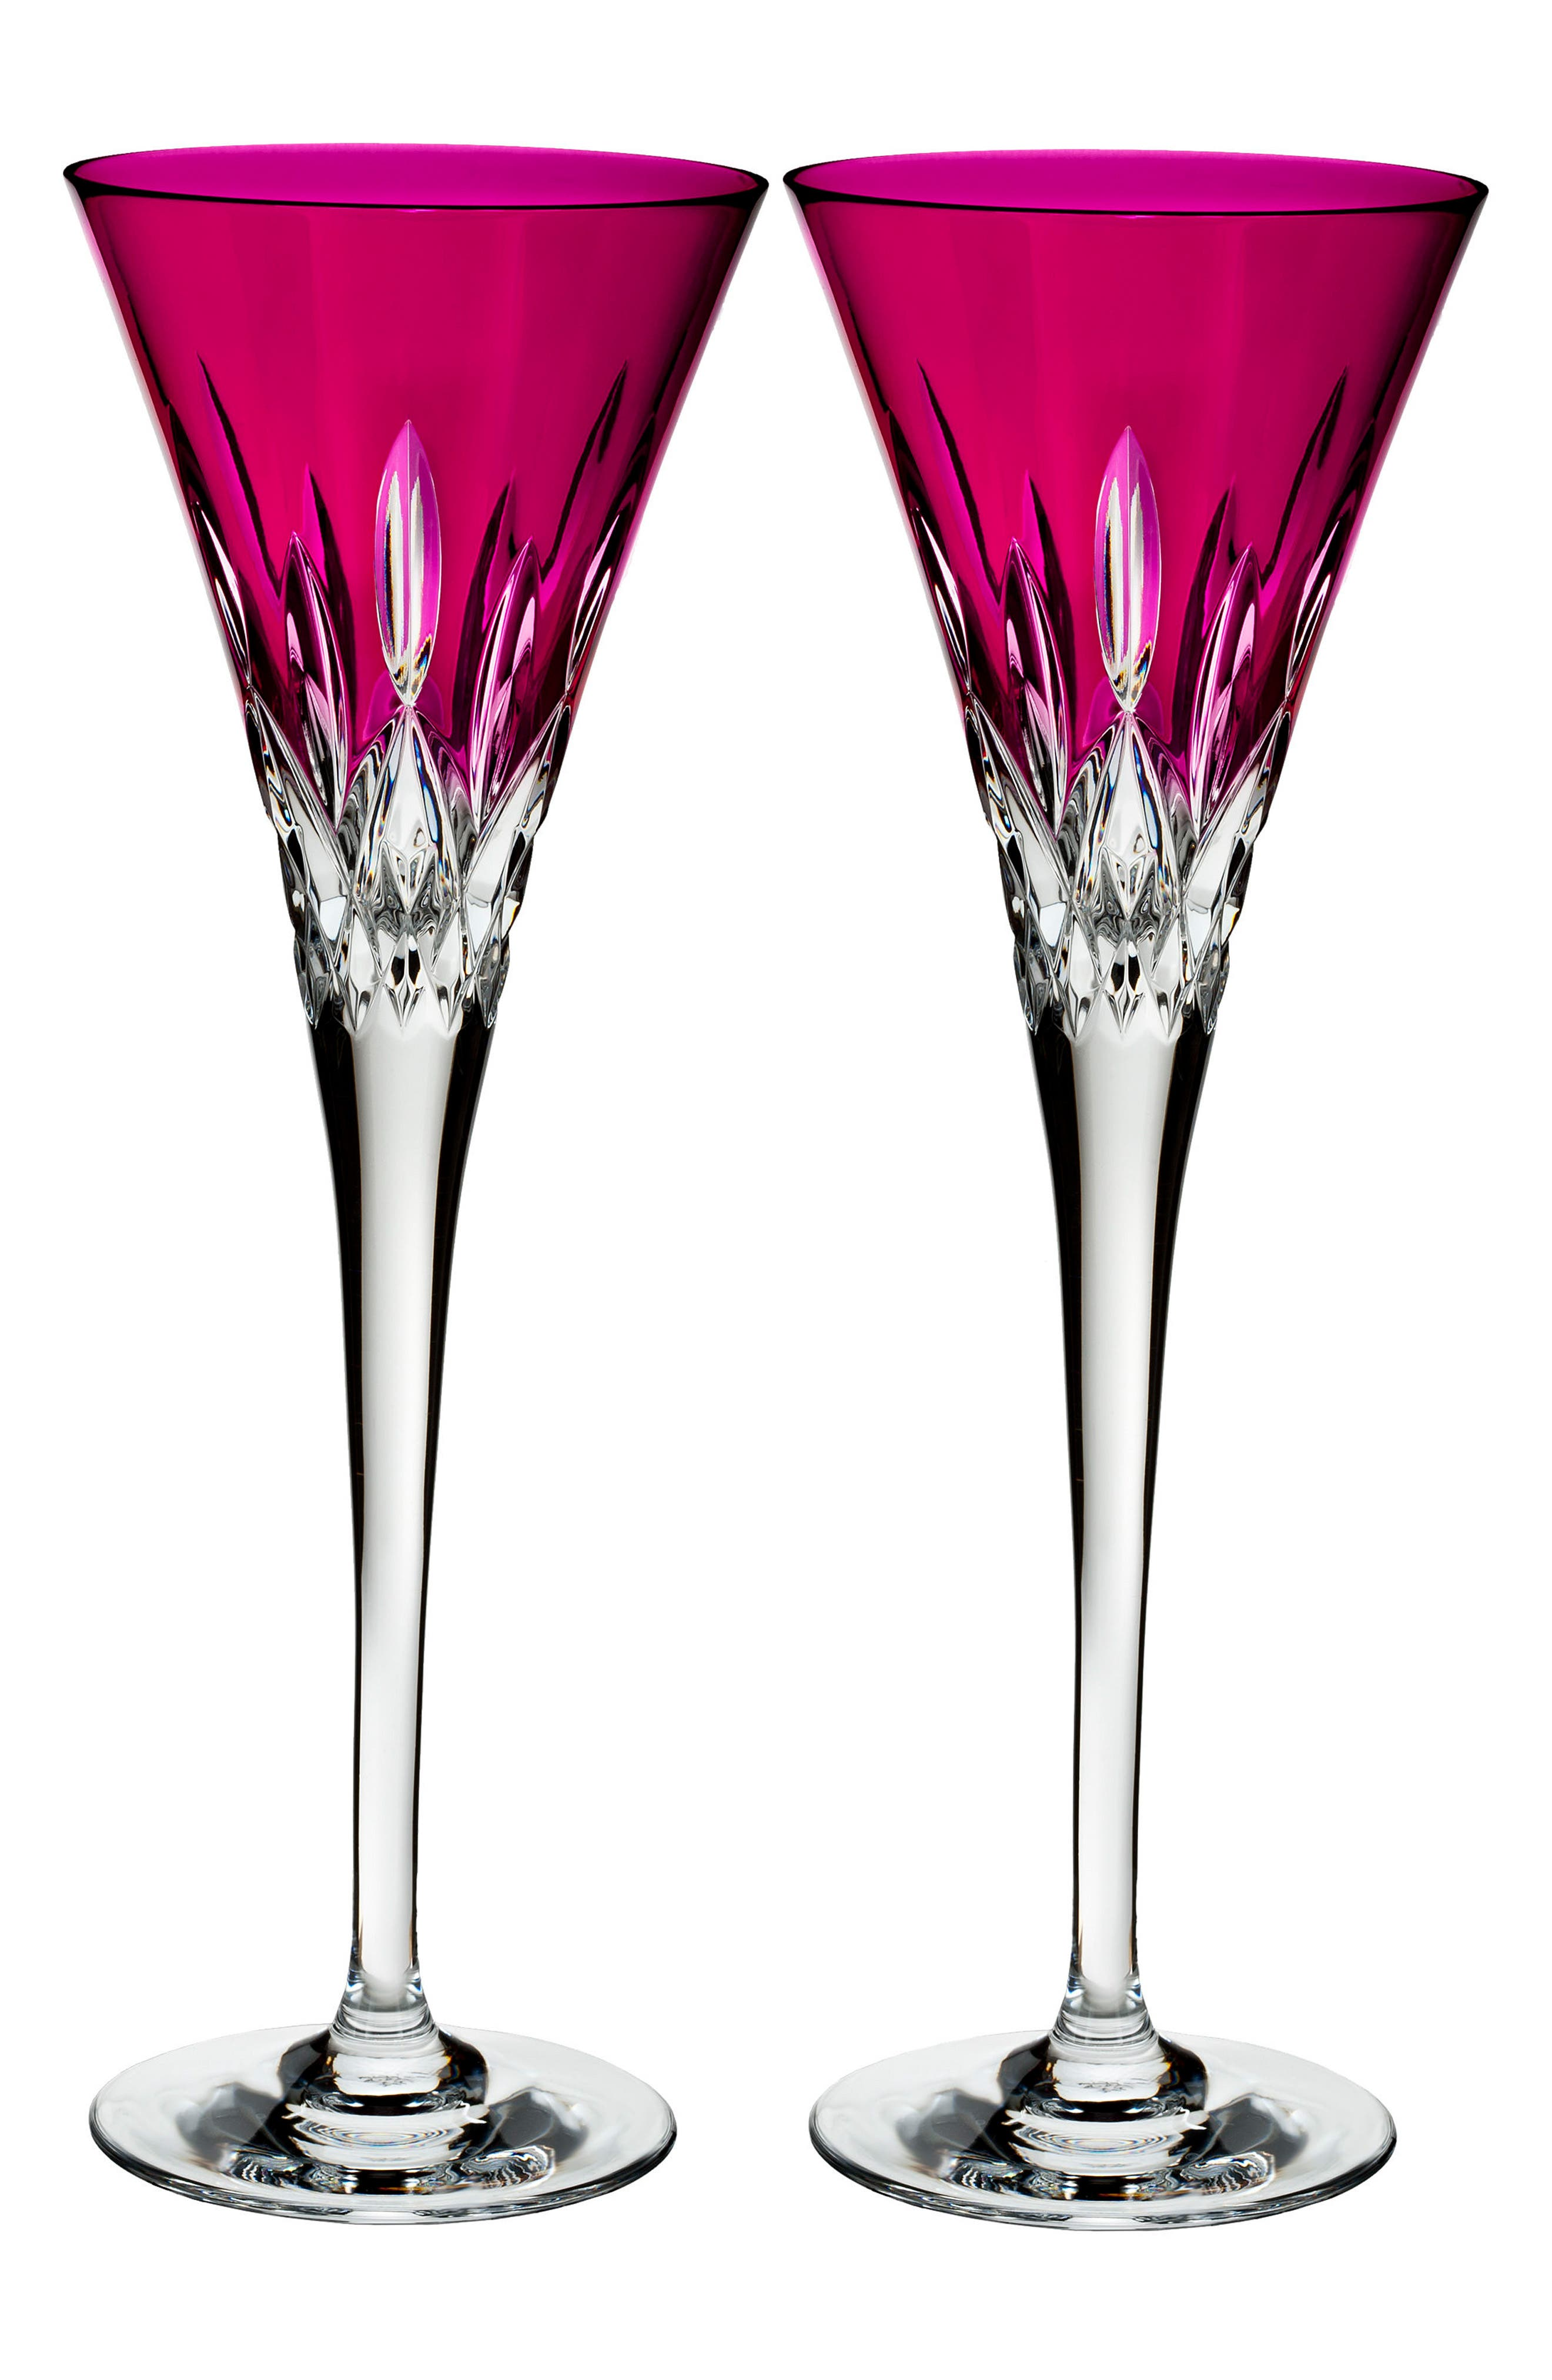 Alternate Image 1 Selected - Waterford Lismore Pops Set of 2 Hot Pink Lead Crystal Champagne Flutes